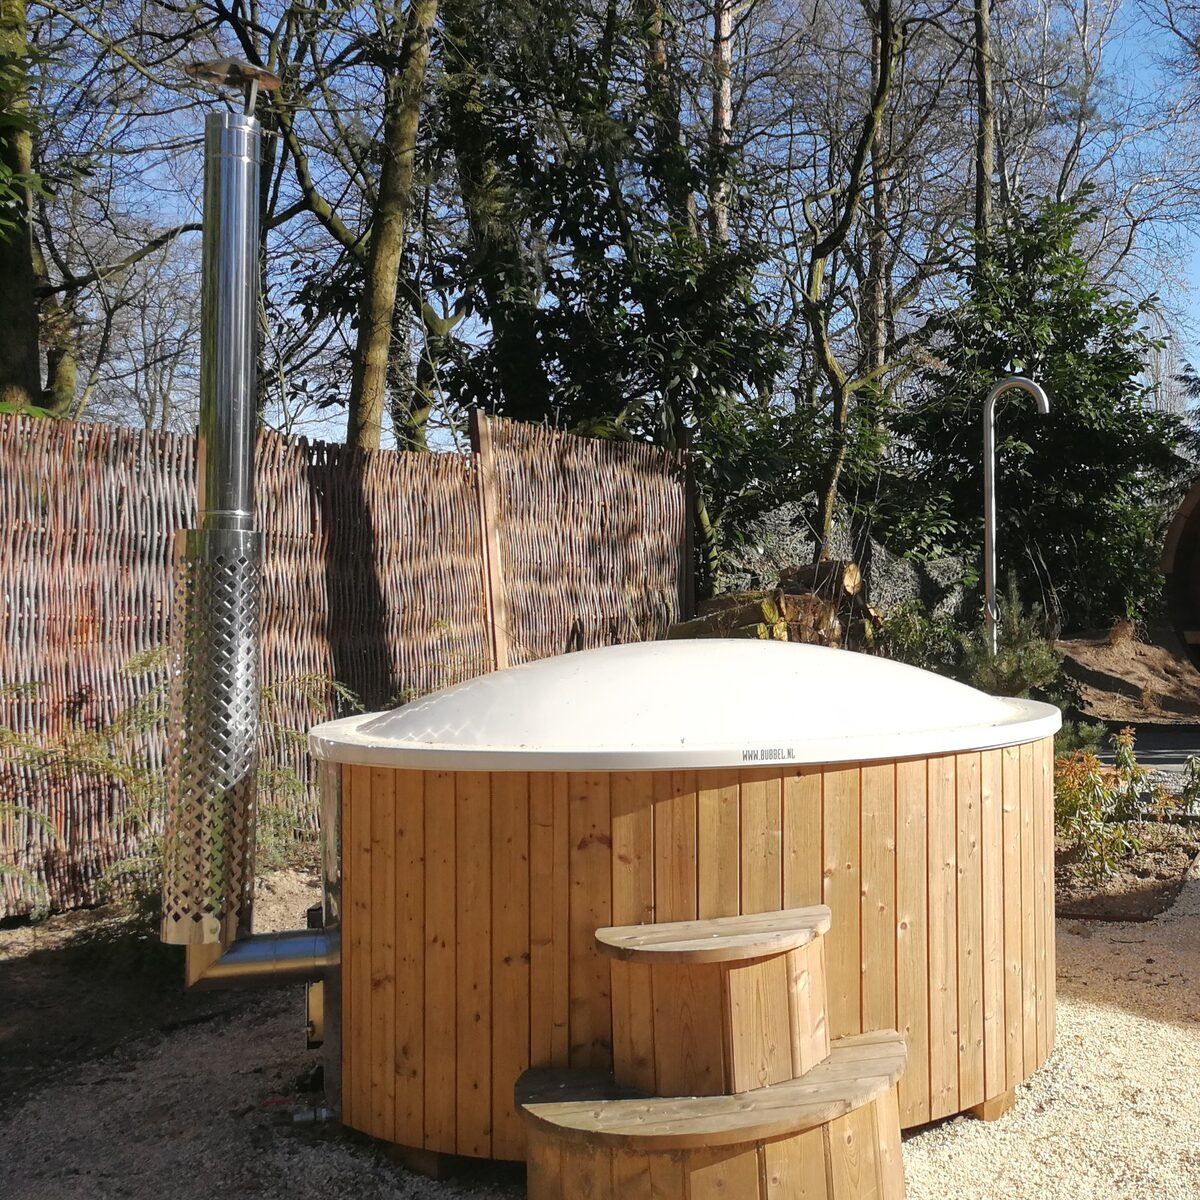 Bos Lodge 55 Eco 4 pers. (Hottub)